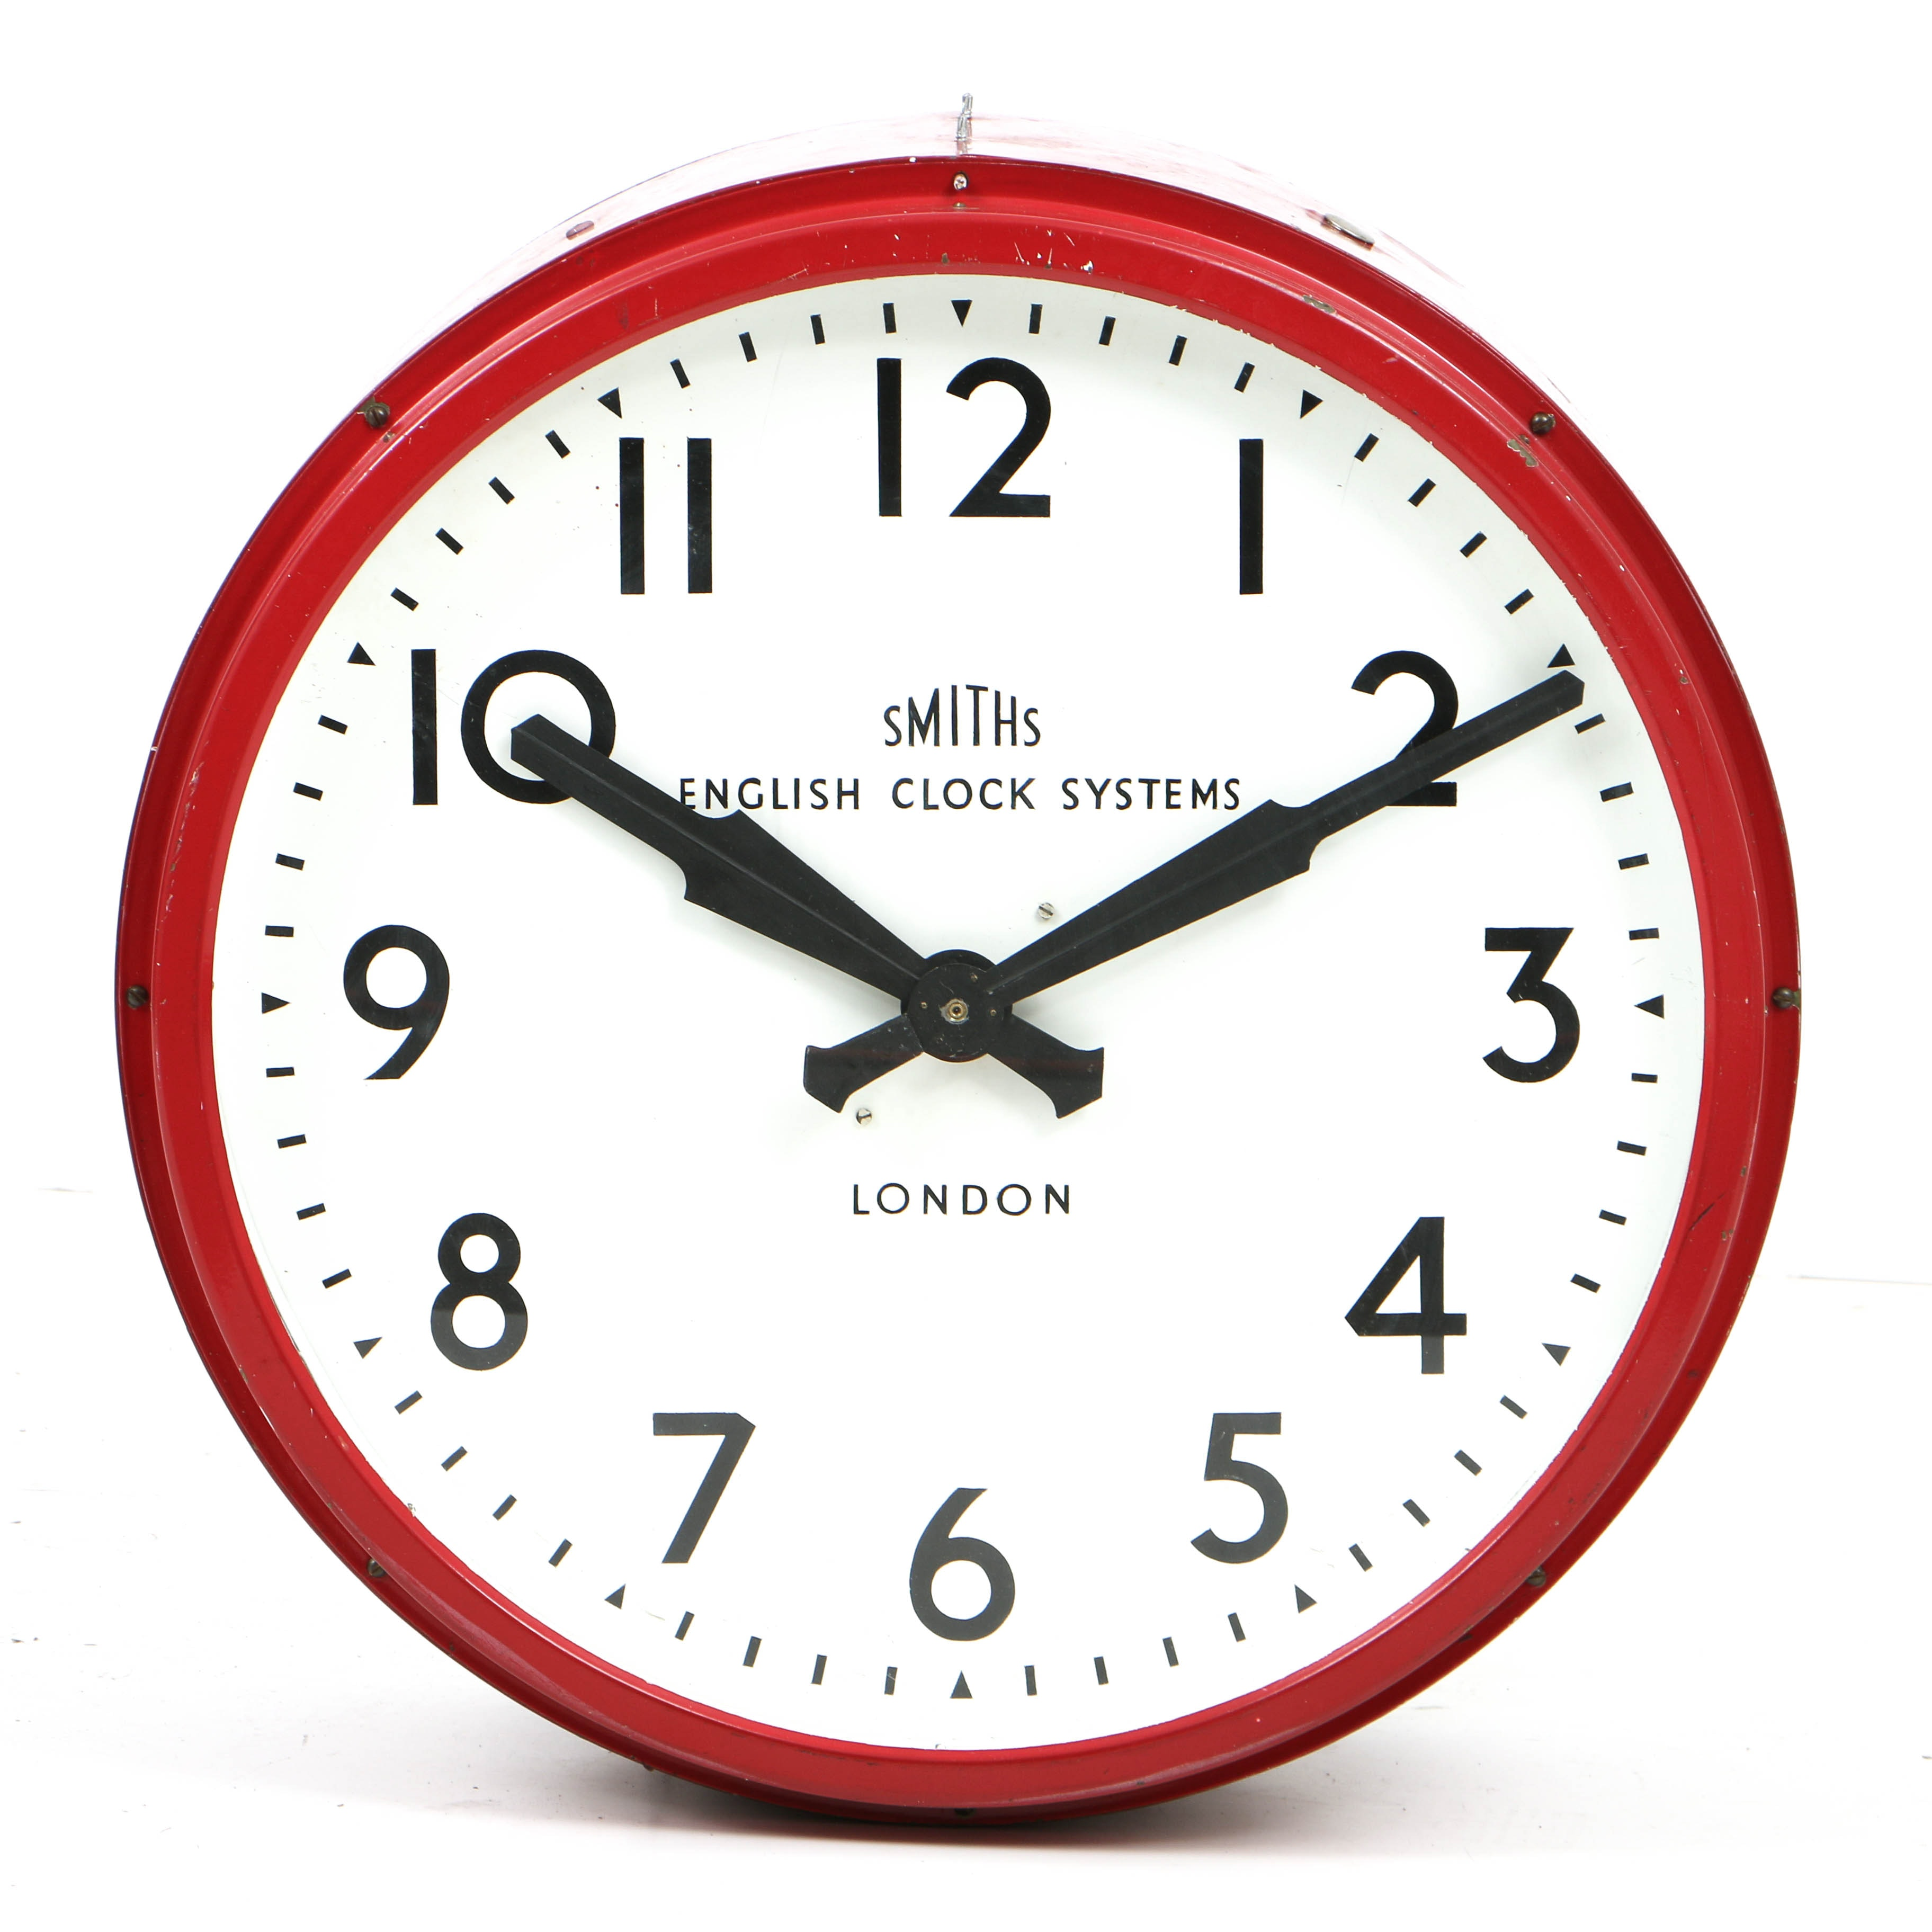 Vintage Industrial Factory Wall Clock by Smiths English Clock Systems of London